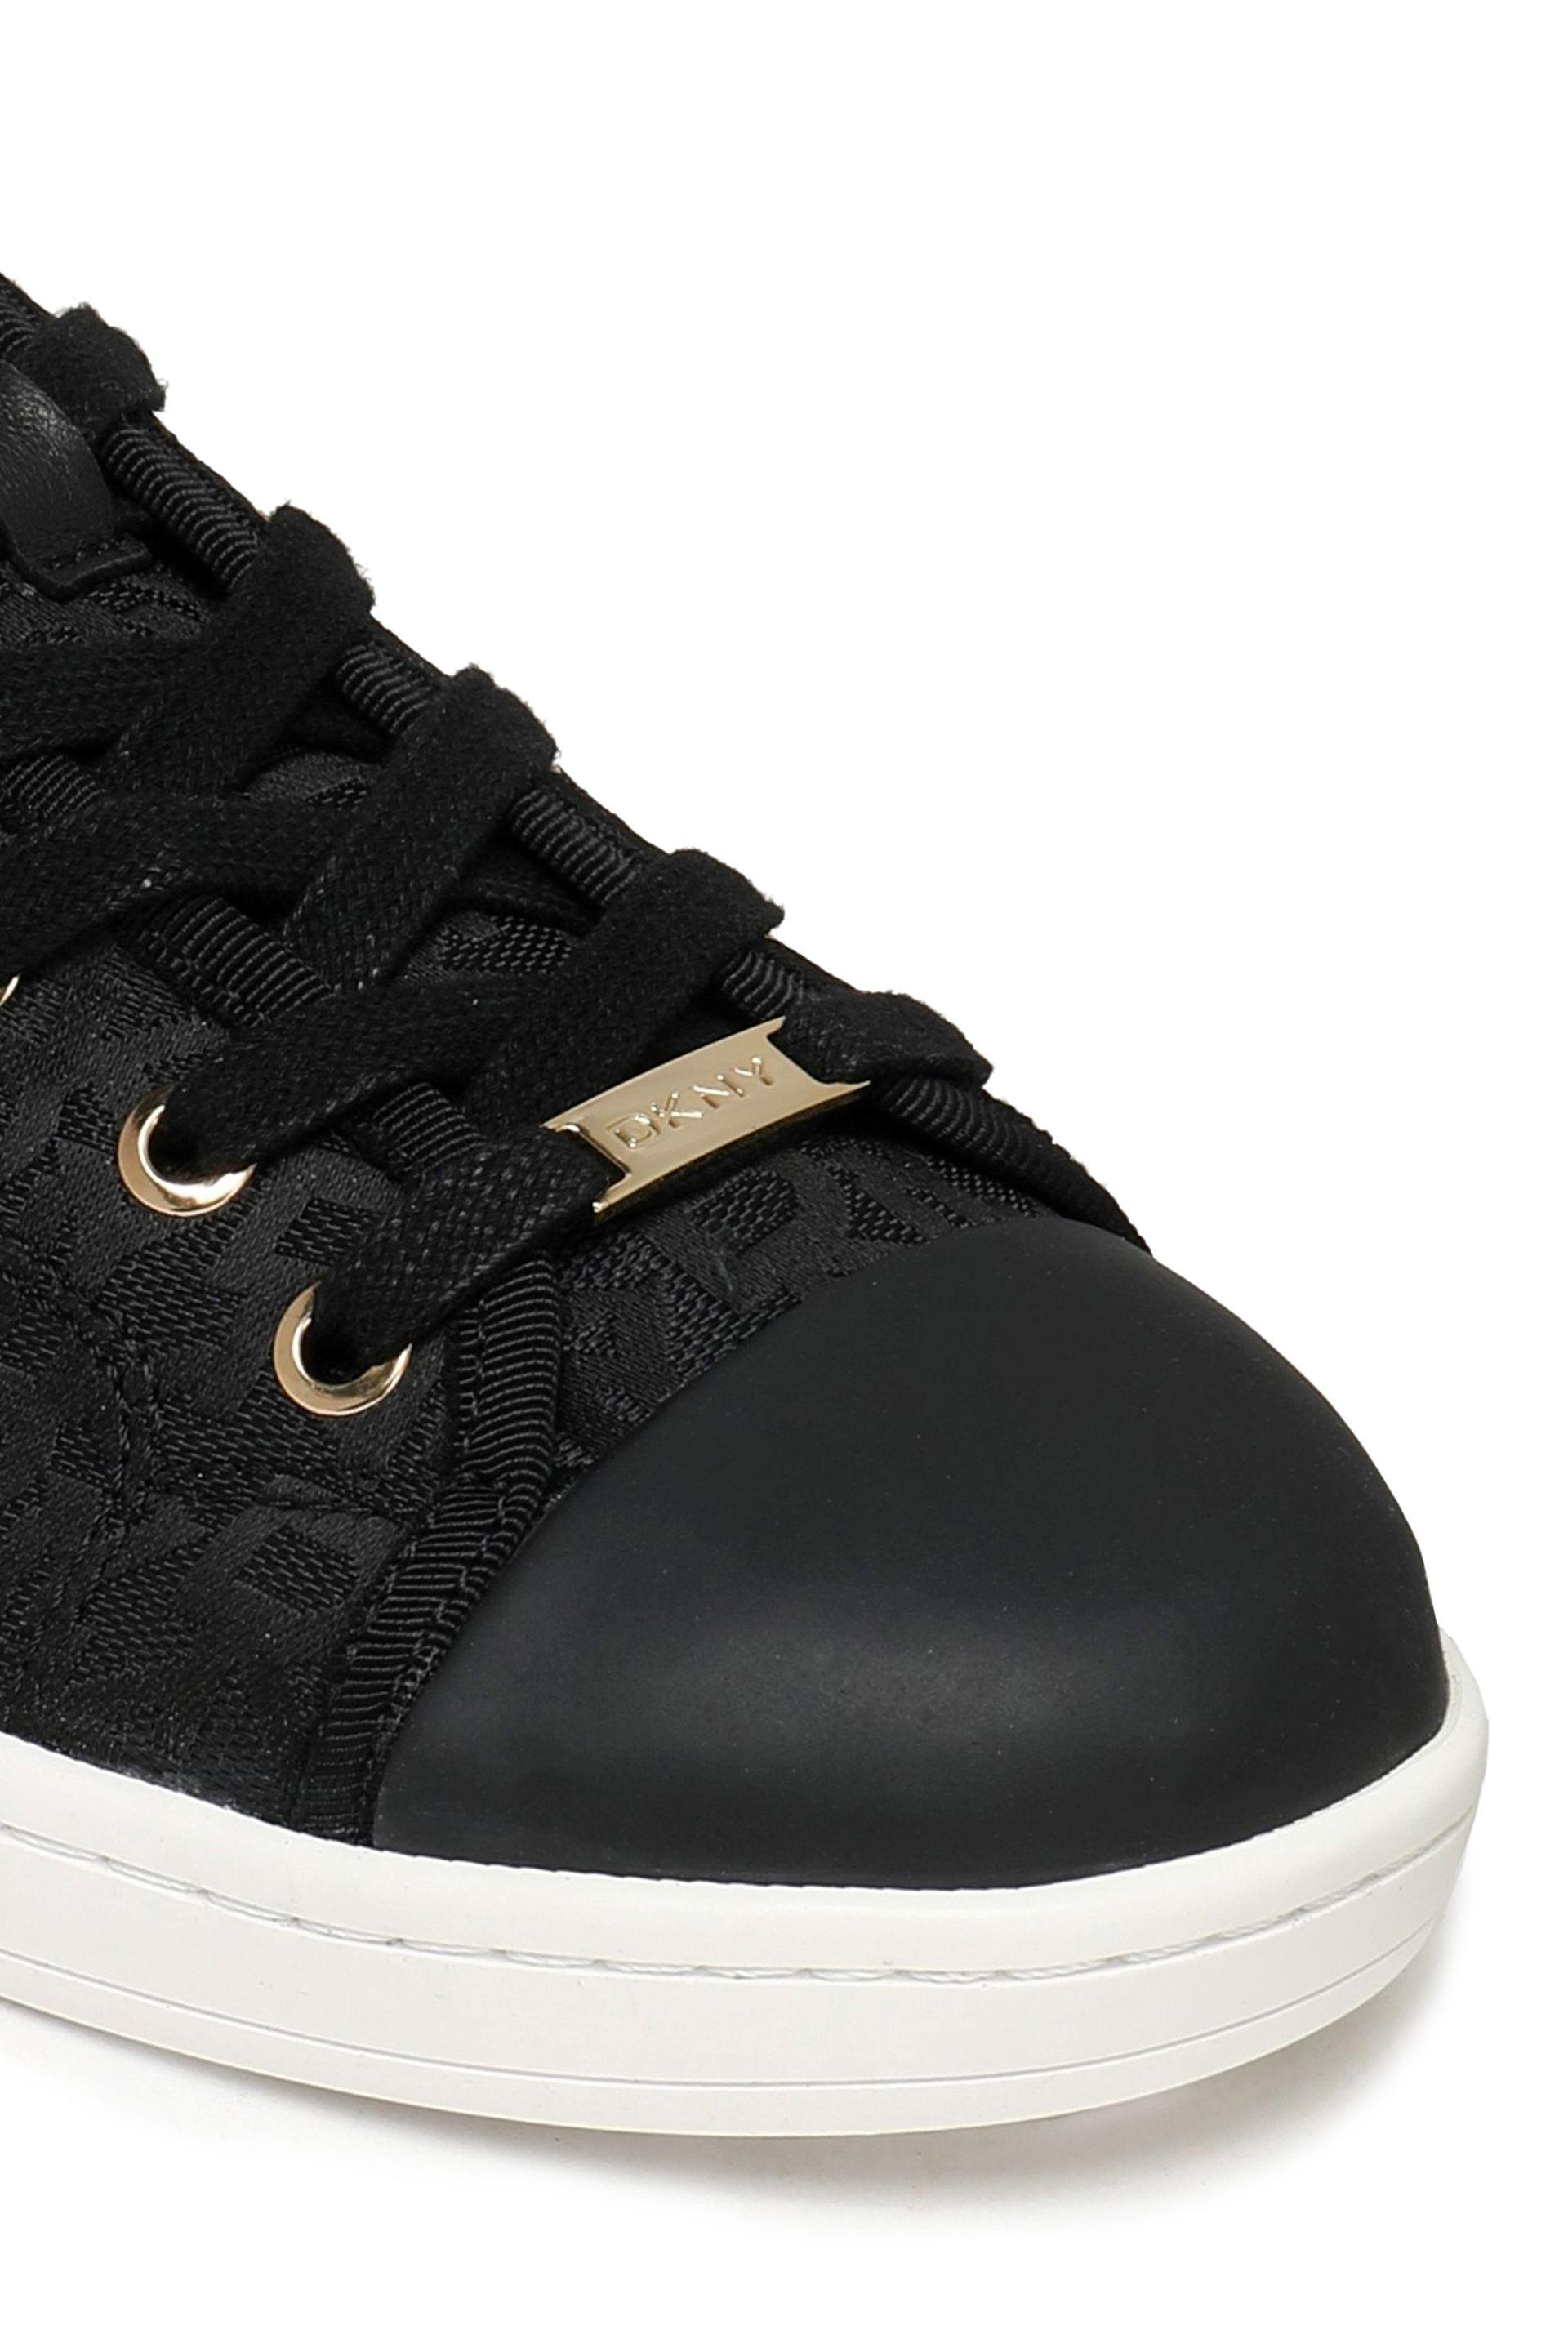 DKNY Rubber-trimmed Jacquard Sneakers in Black